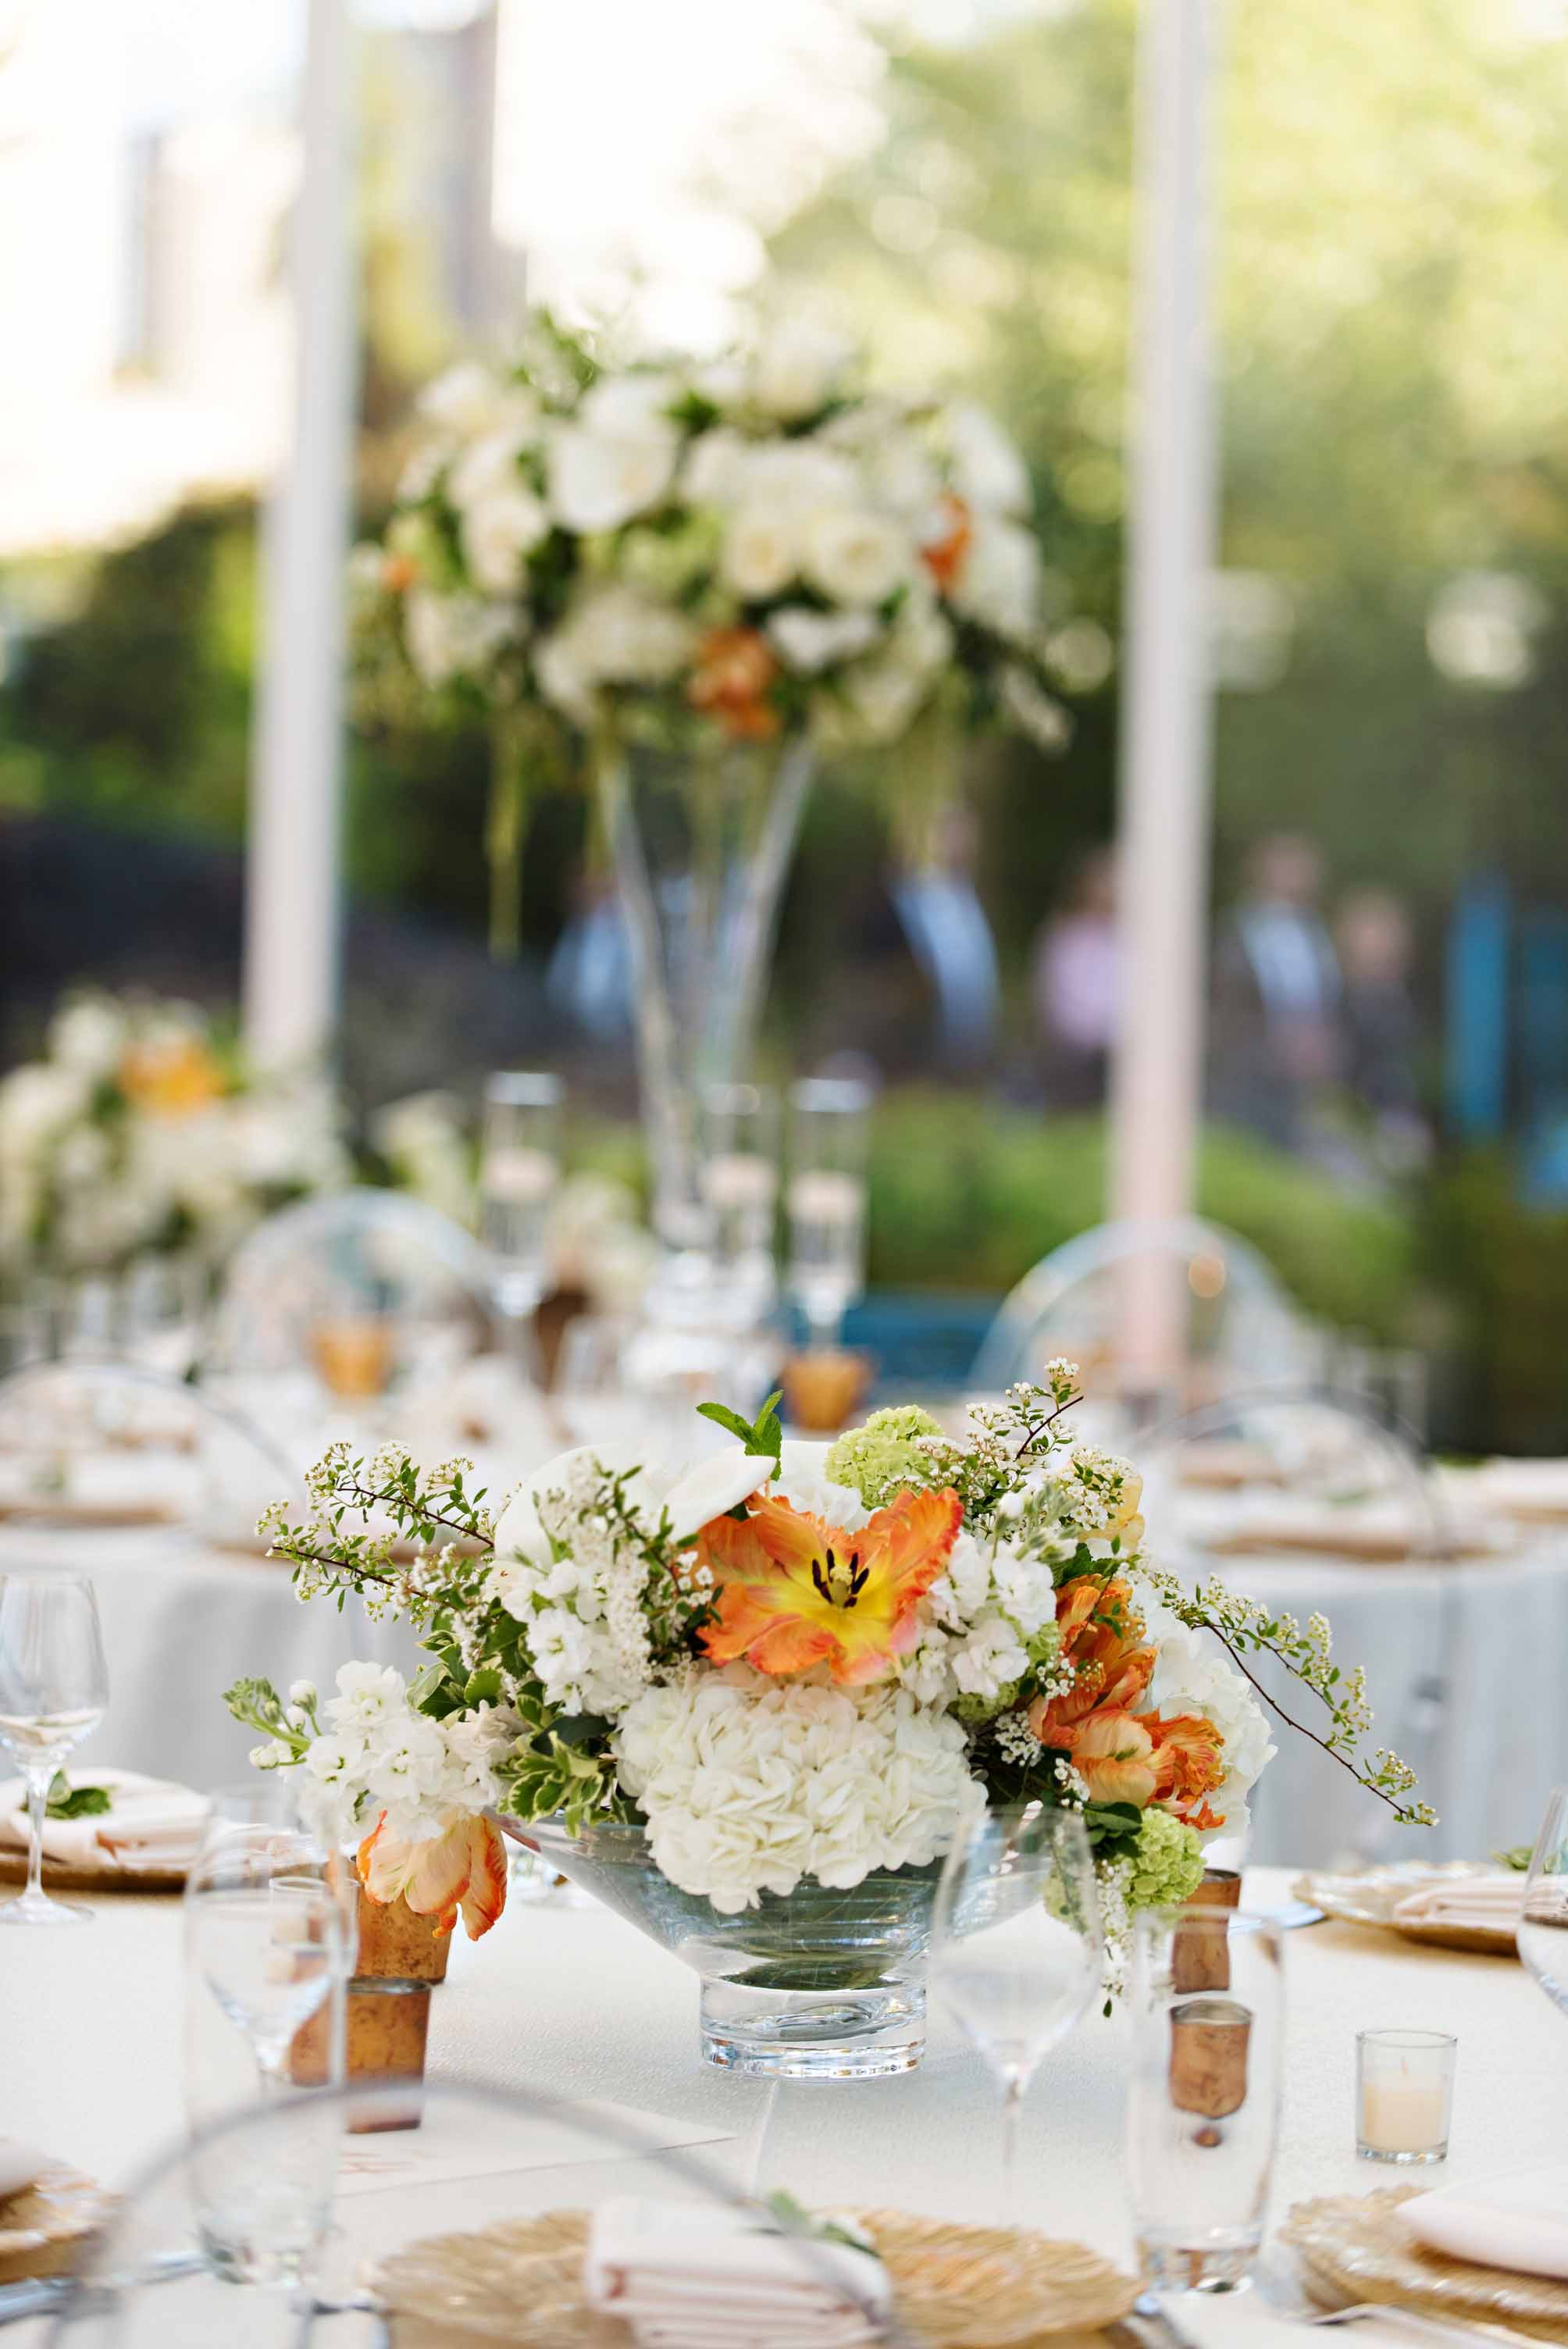 Tall and low centerpieces with white and orange spring flowers on wedding reception tables - by Flora Nova Design